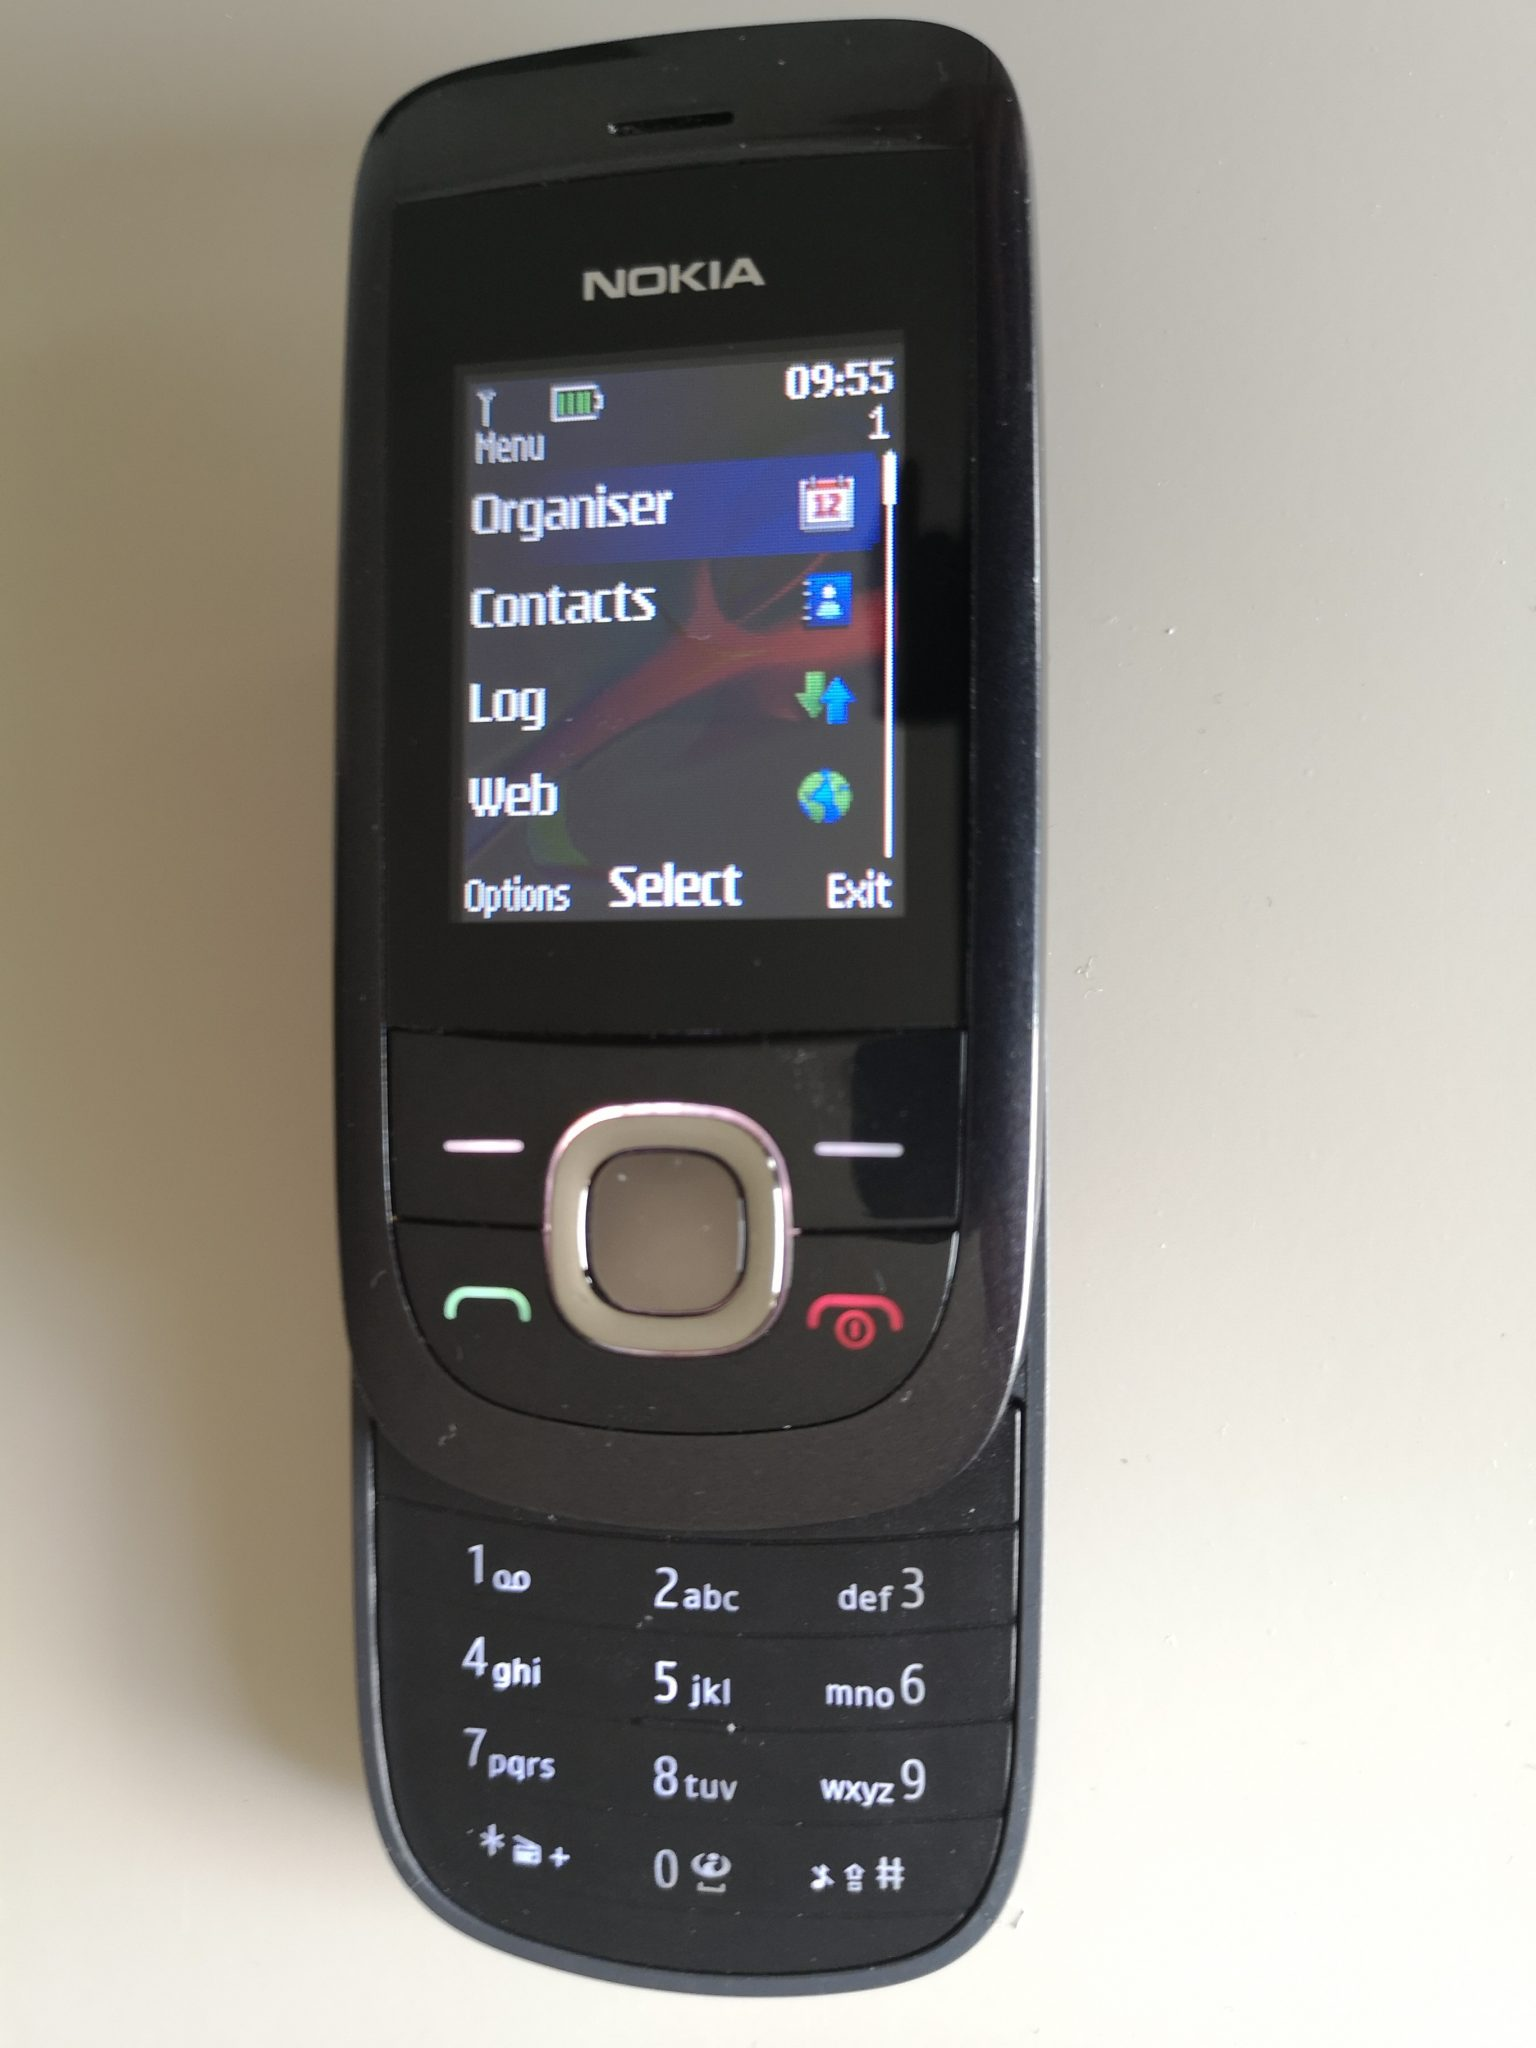 Nokia 2220 Slide Review - A Small, Classy Slider Phone on a Budget